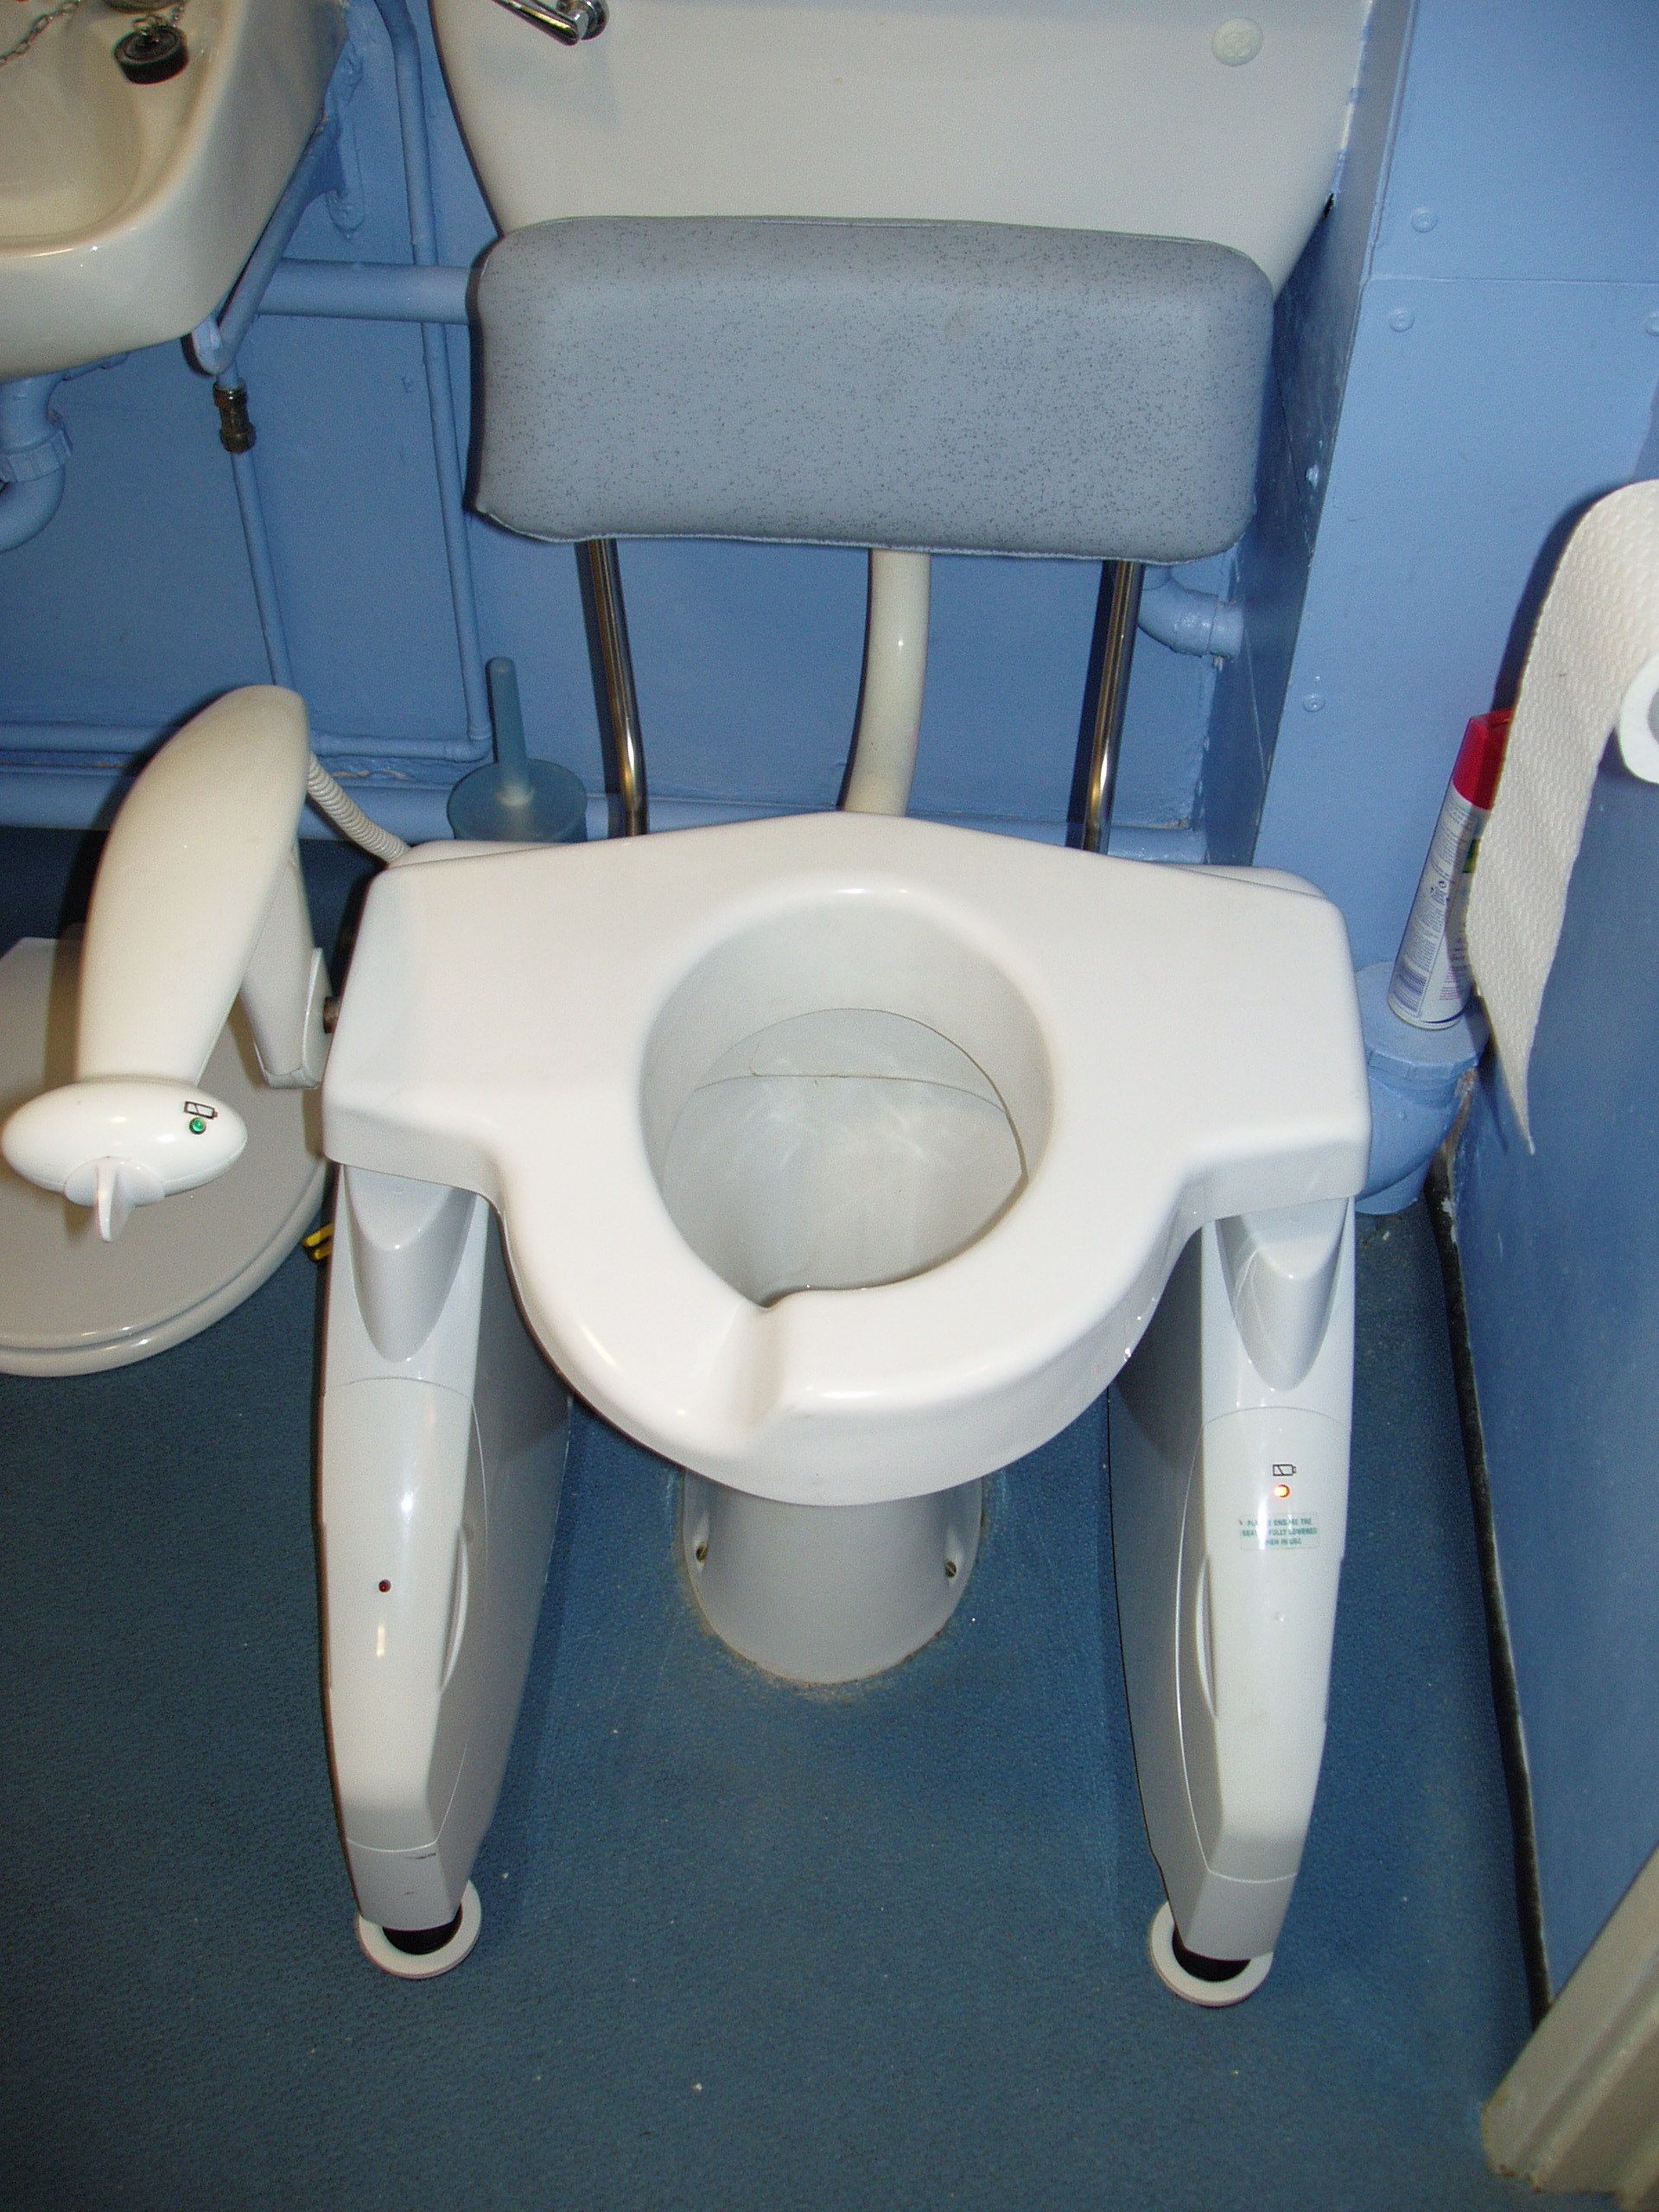 Custom toilet seat for leg length difference | Disability equipment ...